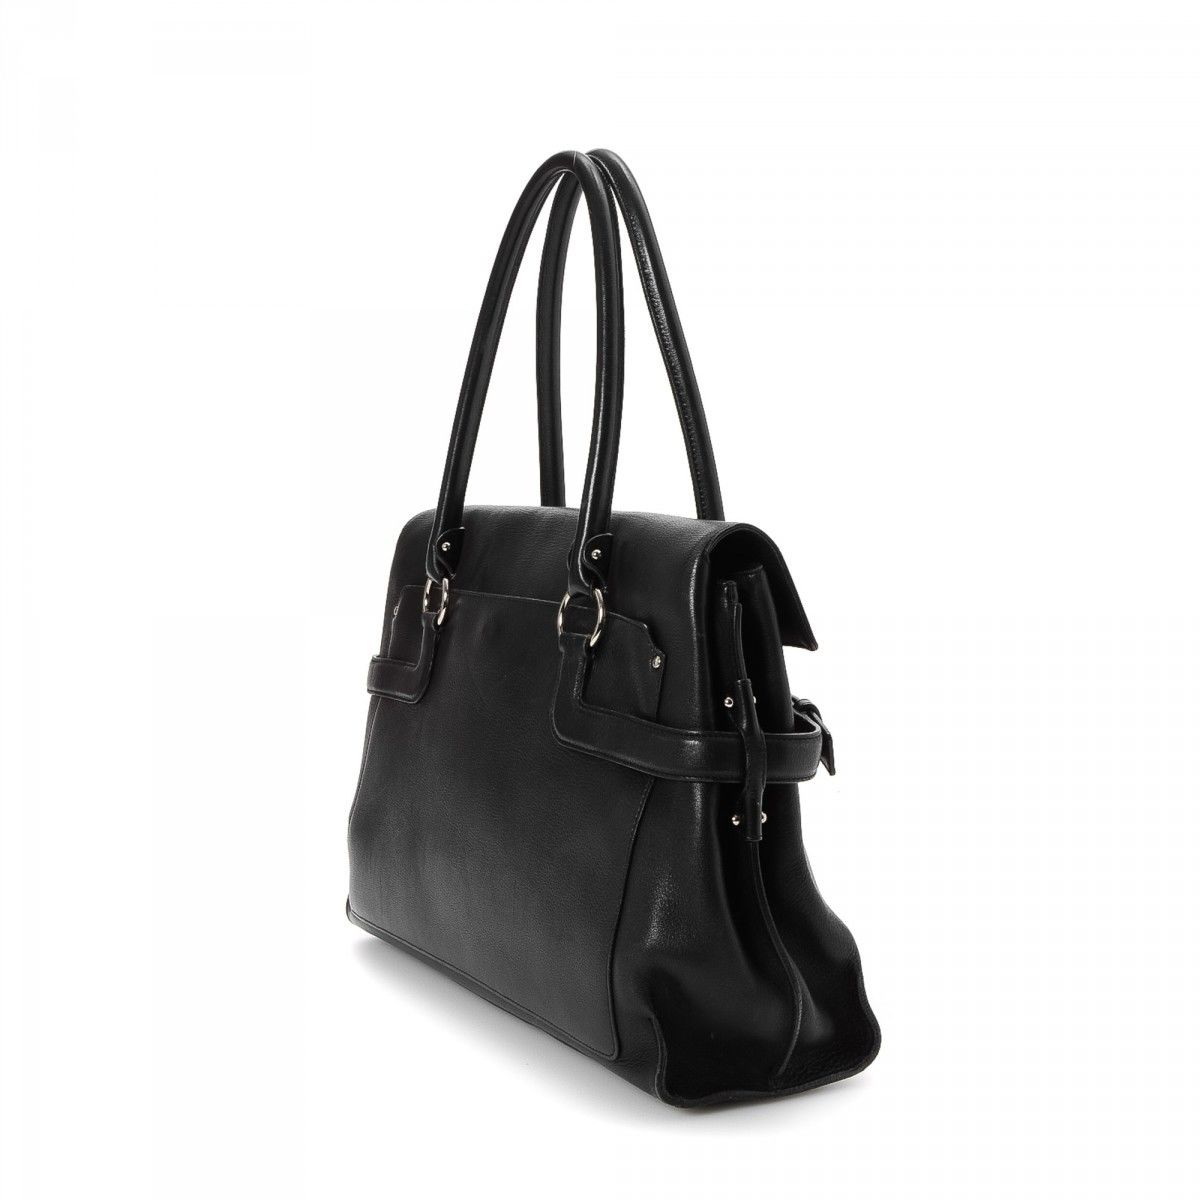 Tote Bag. LXRandCo guarantees this is an authentic vintage Ferragamo Bag  tote. This exquisite large handbag in black is made of leather. Due to the  ... 9b4a10c197b95